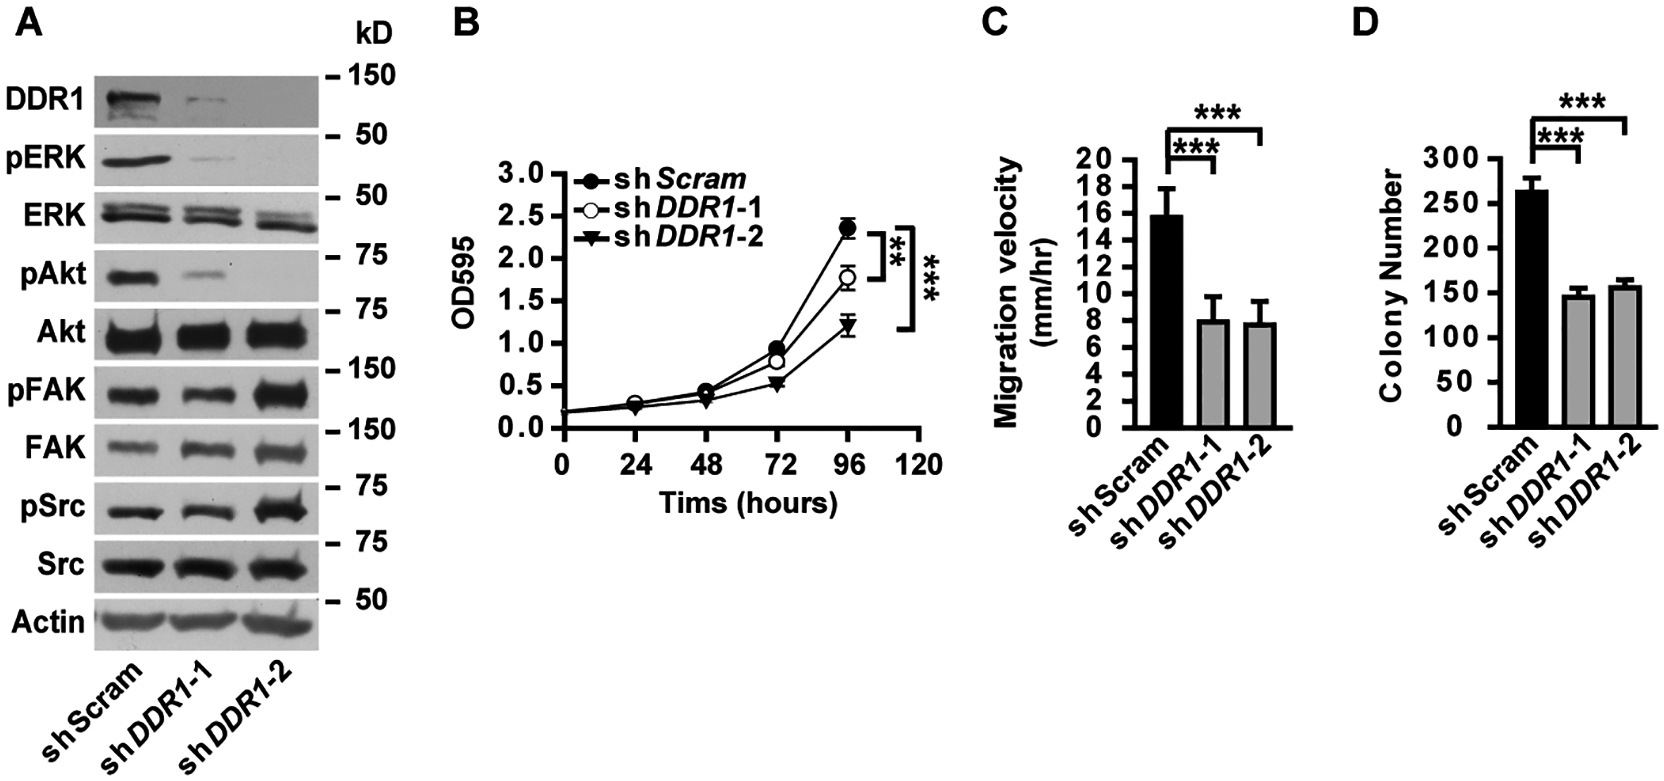 DDR1 is required for ERK activation, cell proliferation and migration in lung cancer cells.